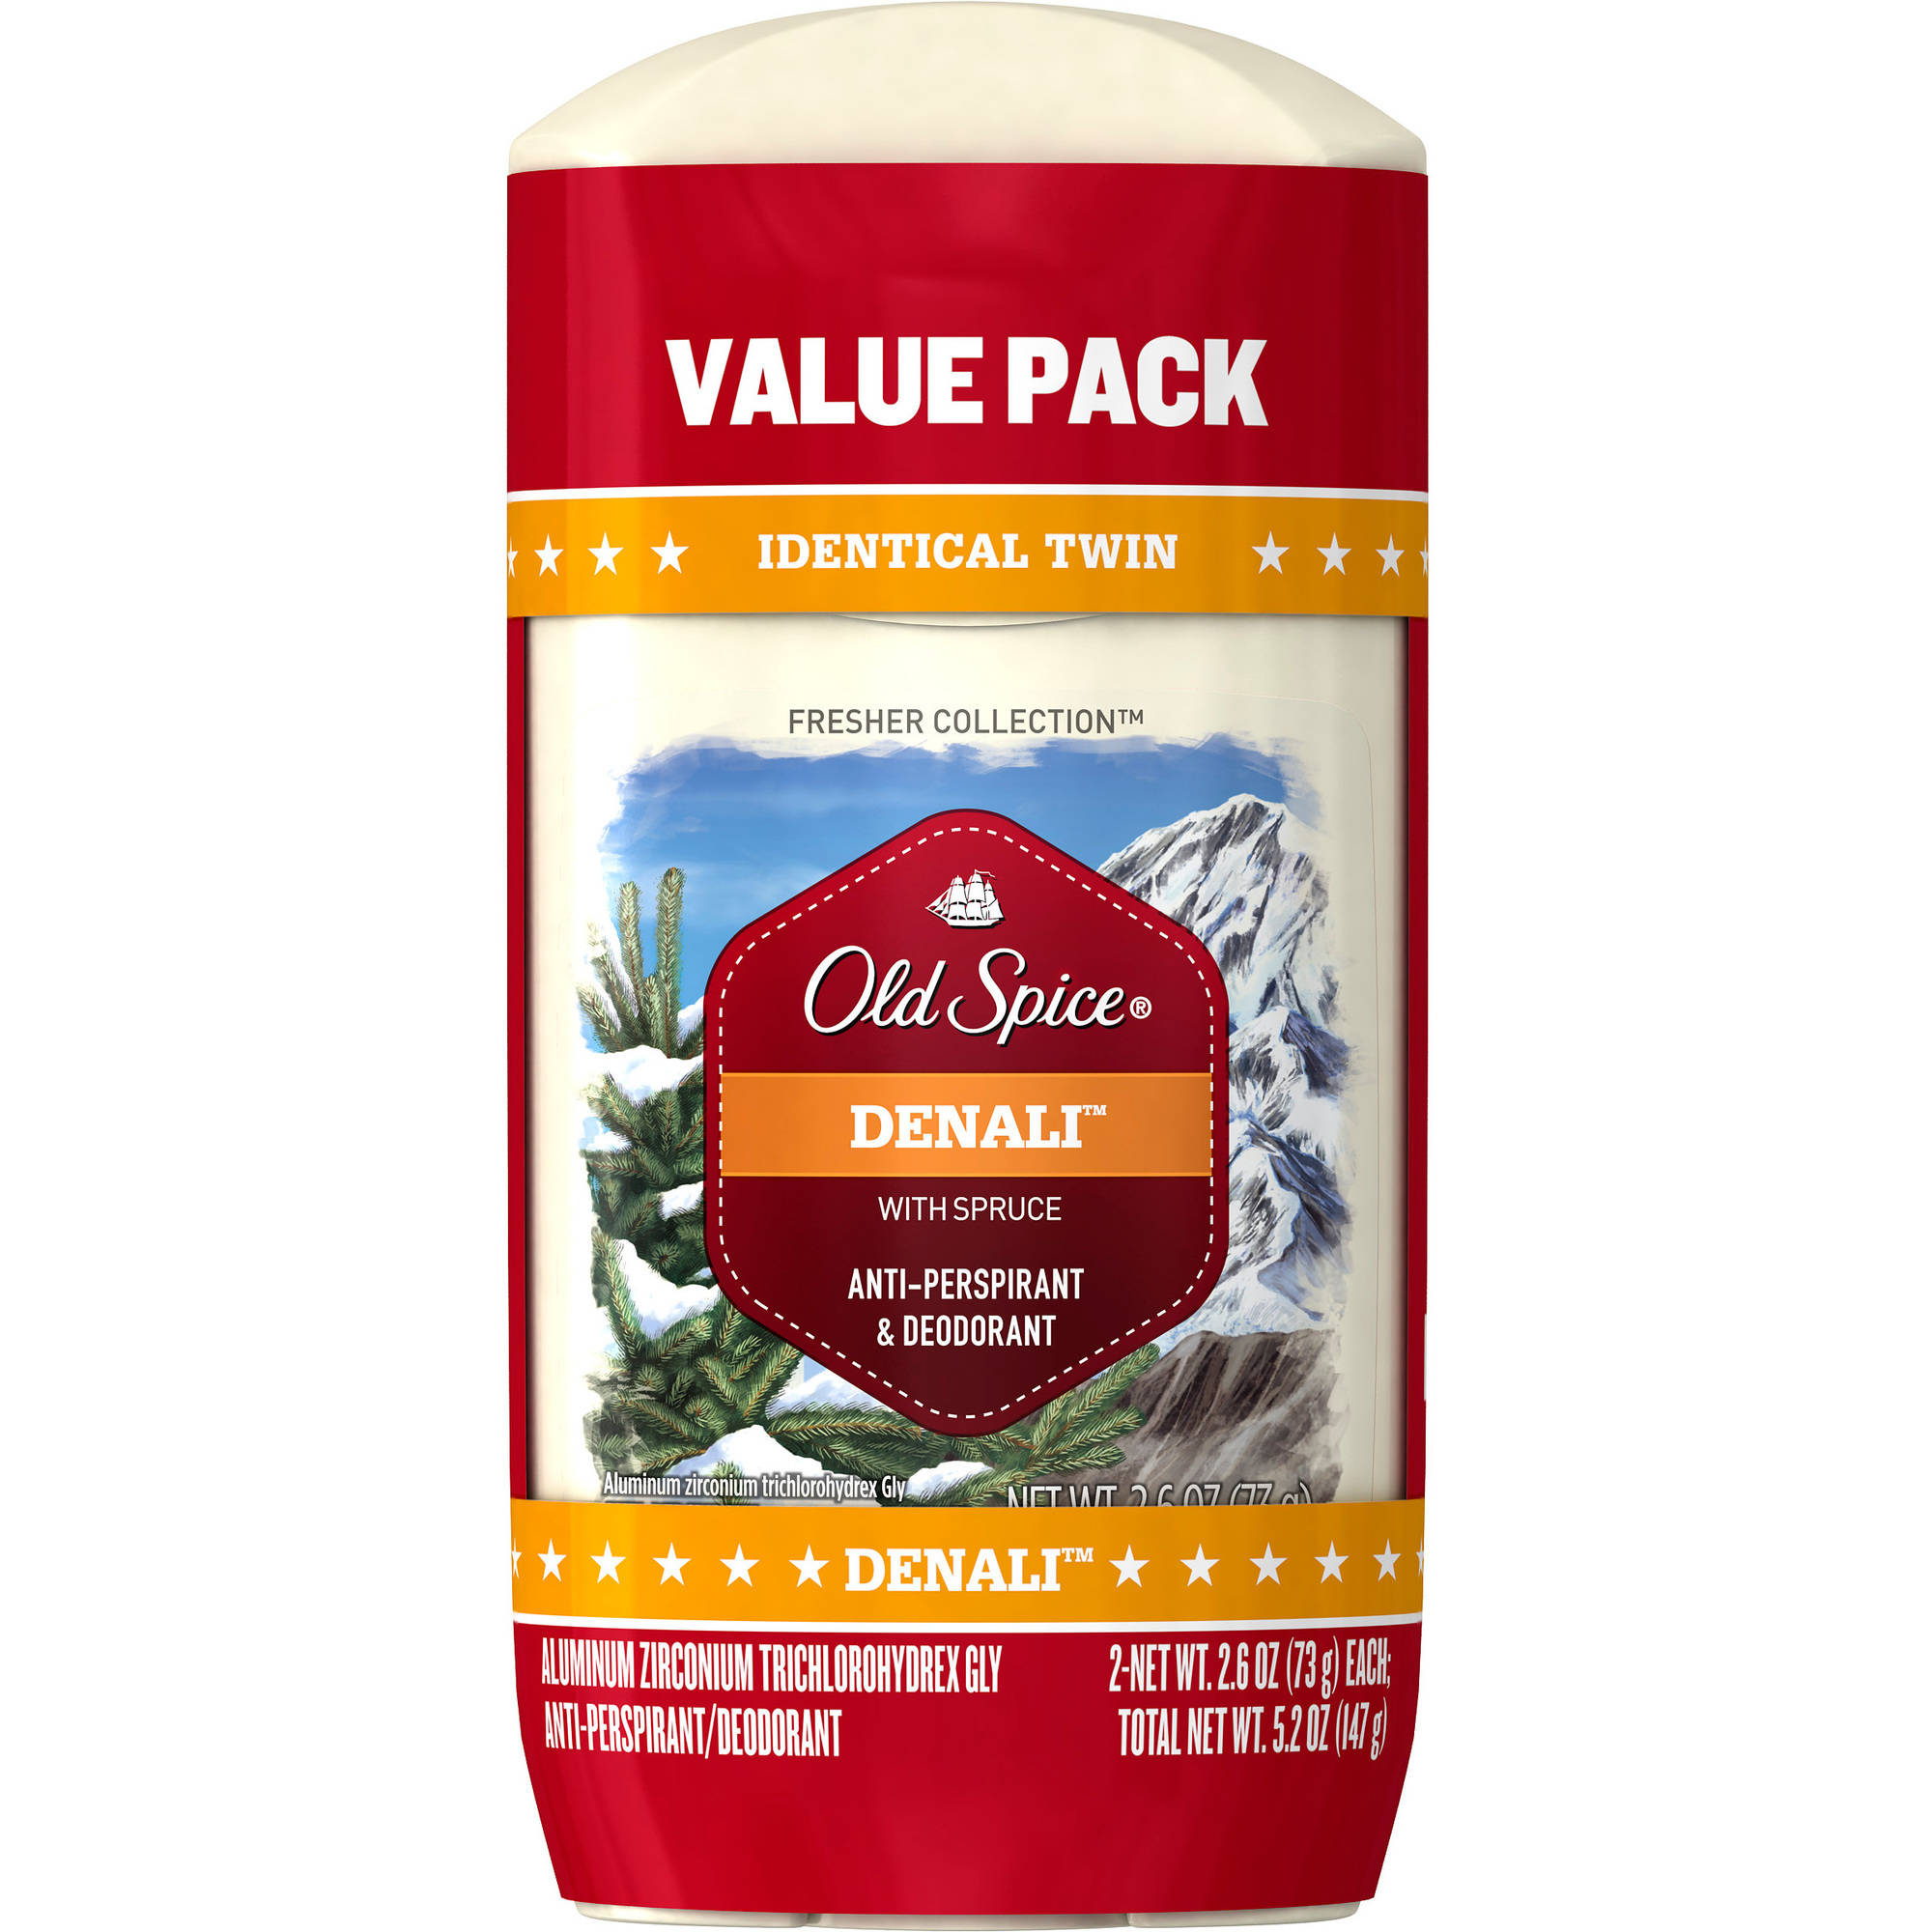 Old Spice Fresh Collection Denali Scent Anti-Perspirant/Deodorant, 2.6 oz, 2 count